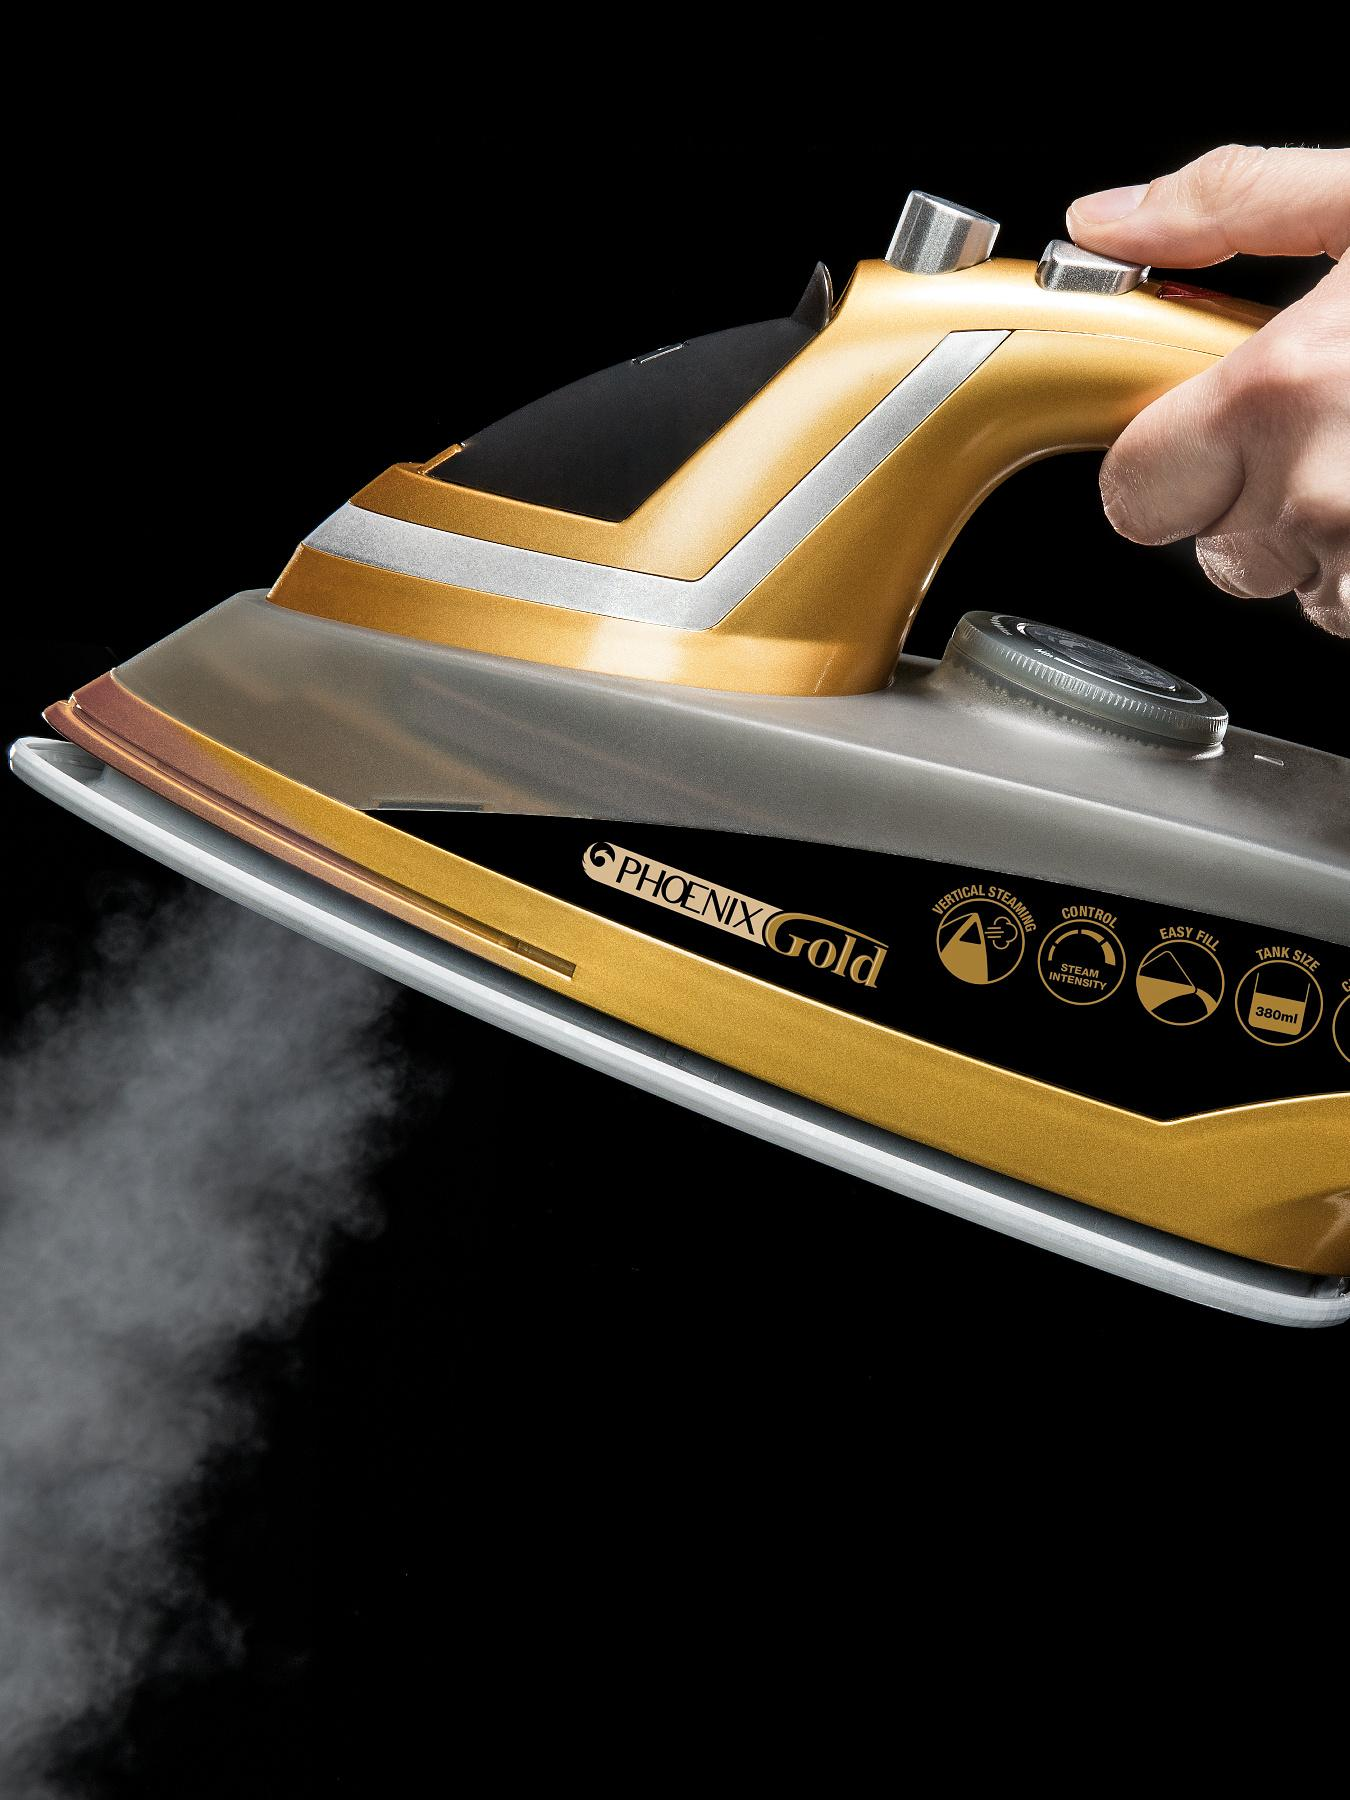 Buy Cheap Steam Ironing Press Compare Irons Prices For